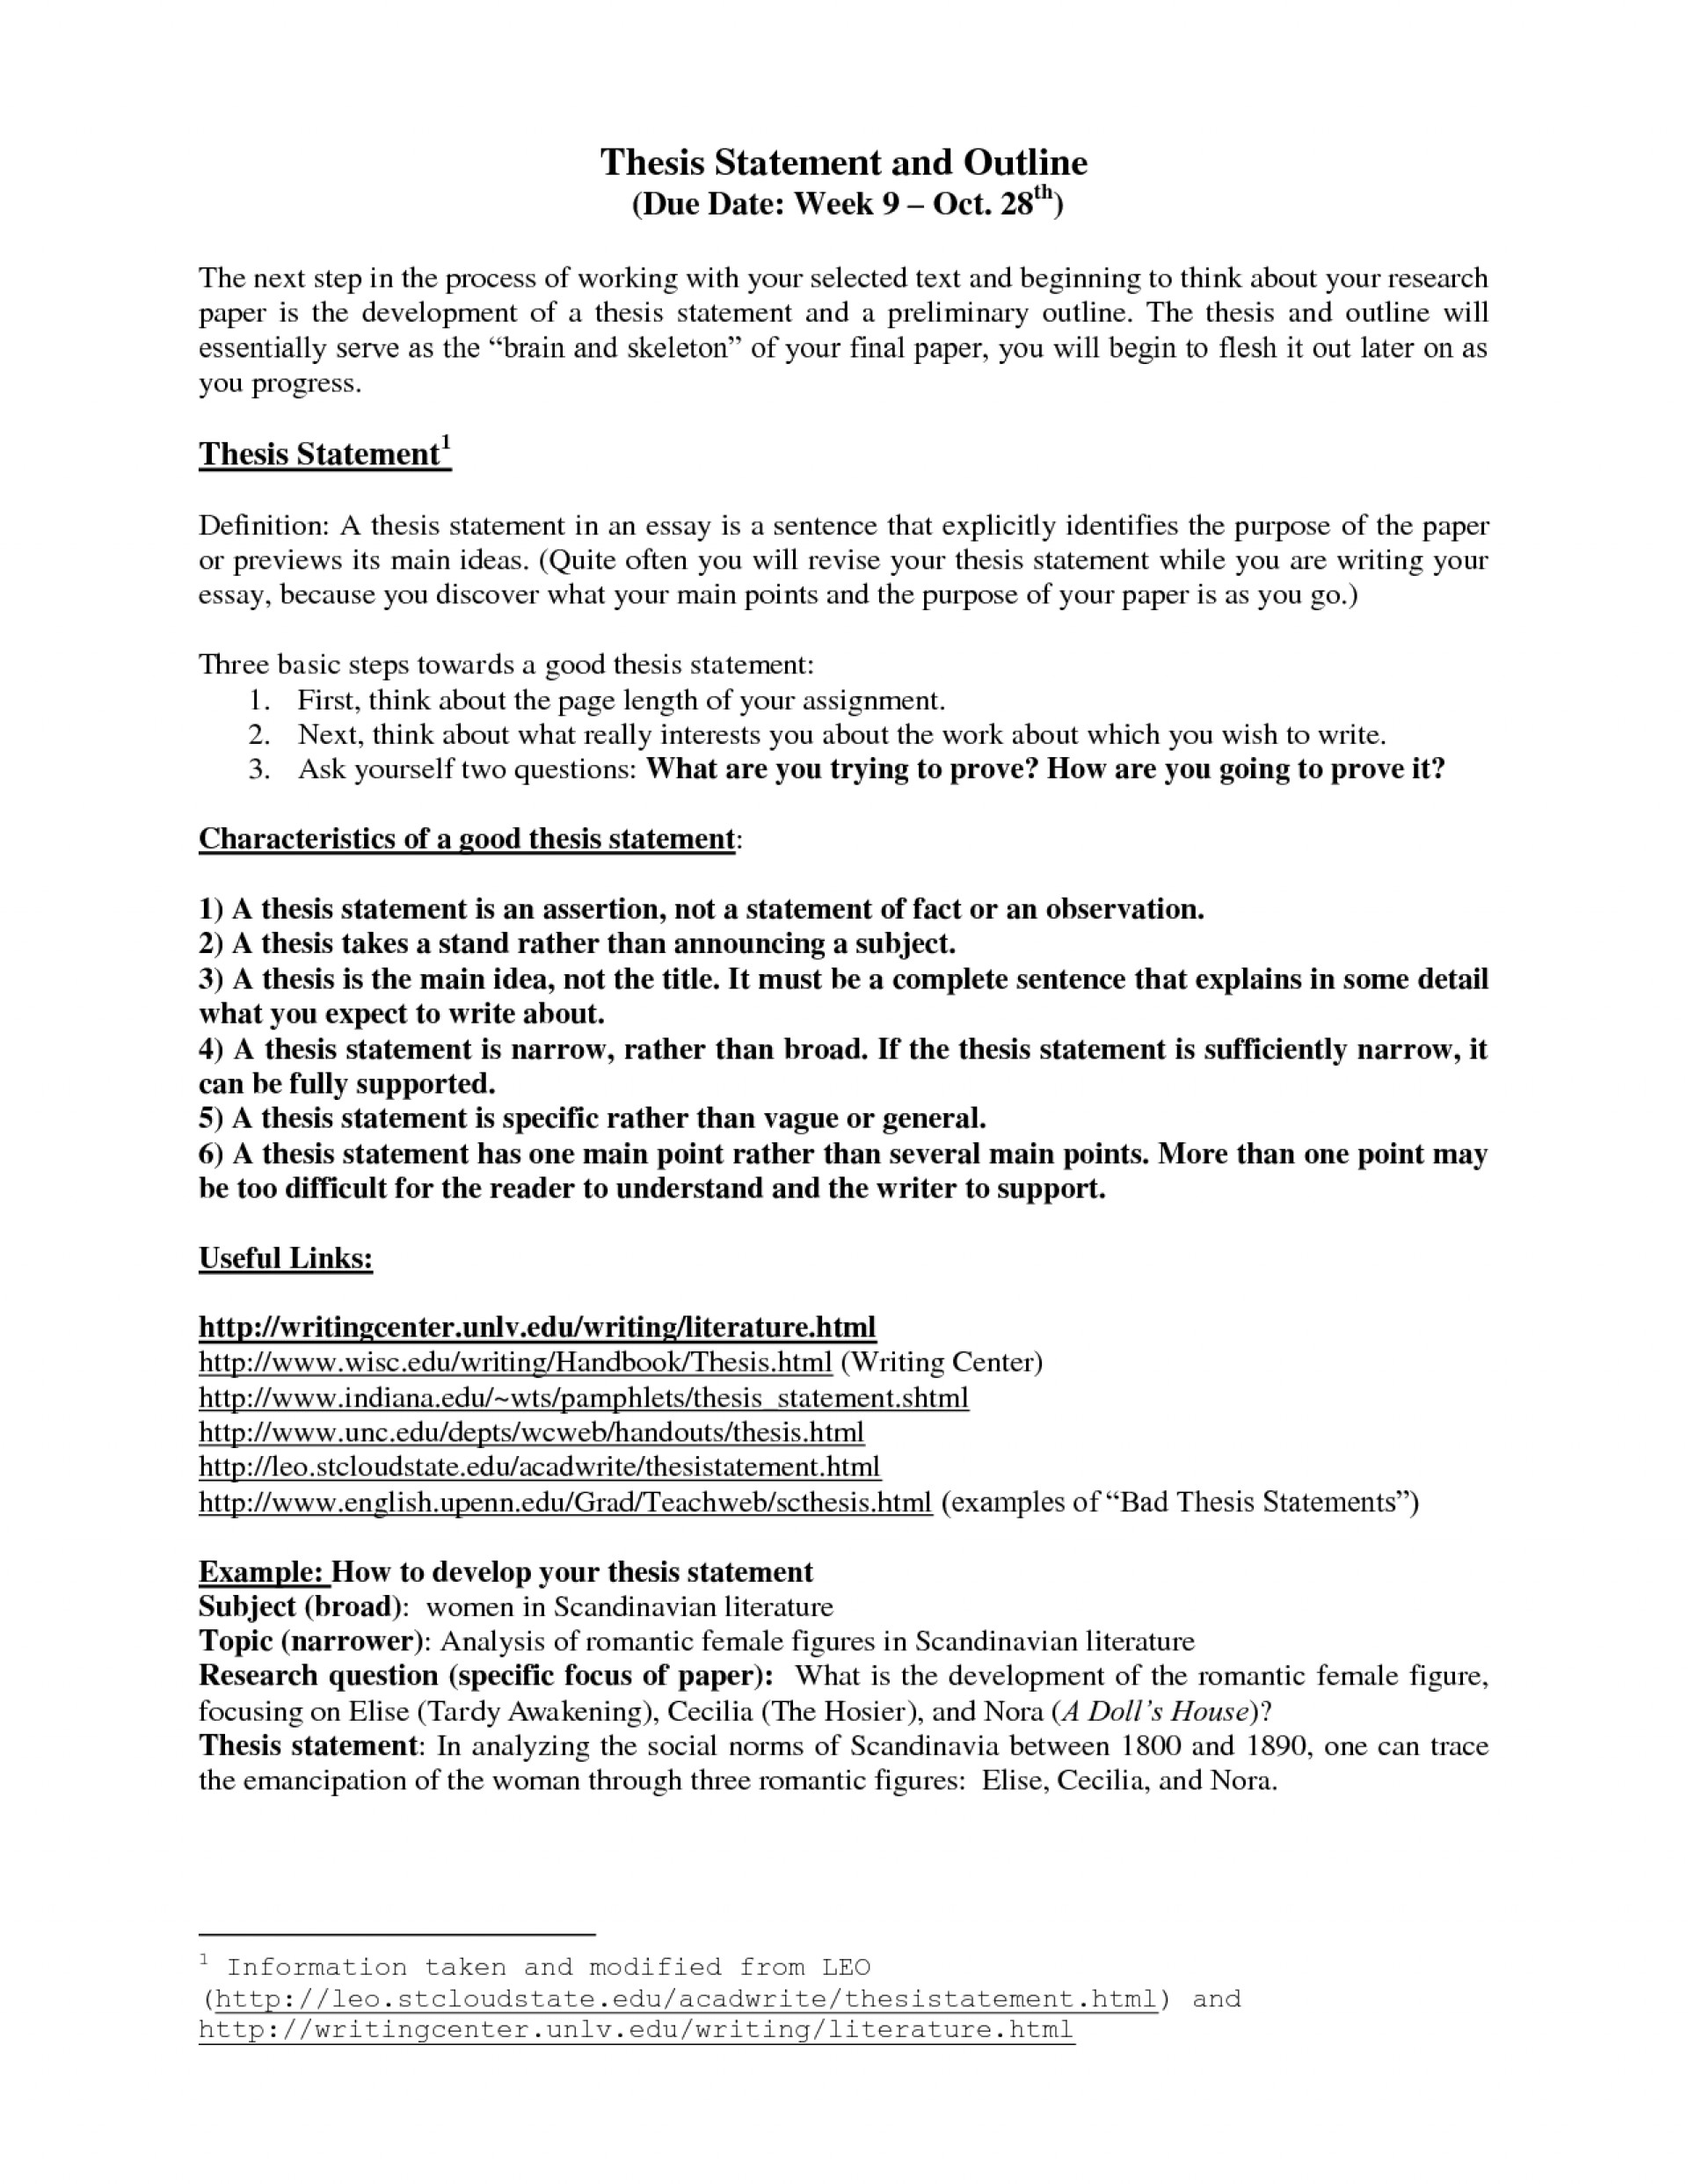 007 Thesis Statement And Outline Template Wx8nmdez Research Paper Fascinating Autism 1920